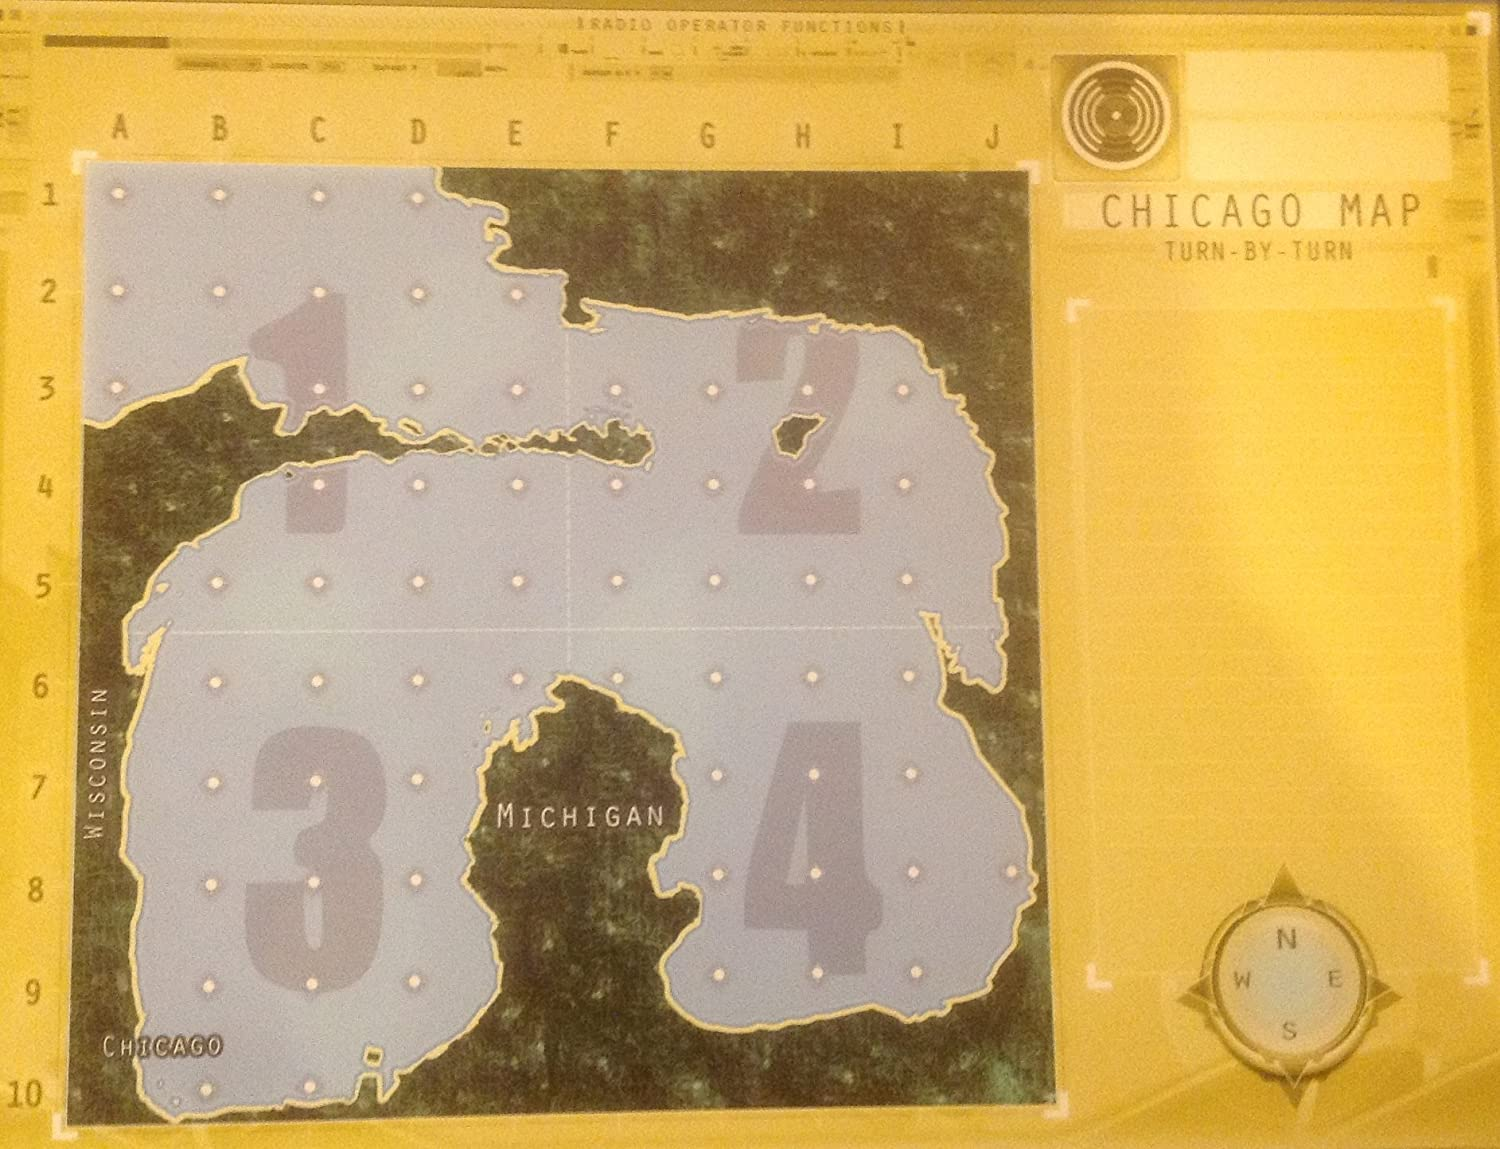 Amazoncom Captain Sonar Board Game Extra Maps Chicago Map - Chicago map amazon